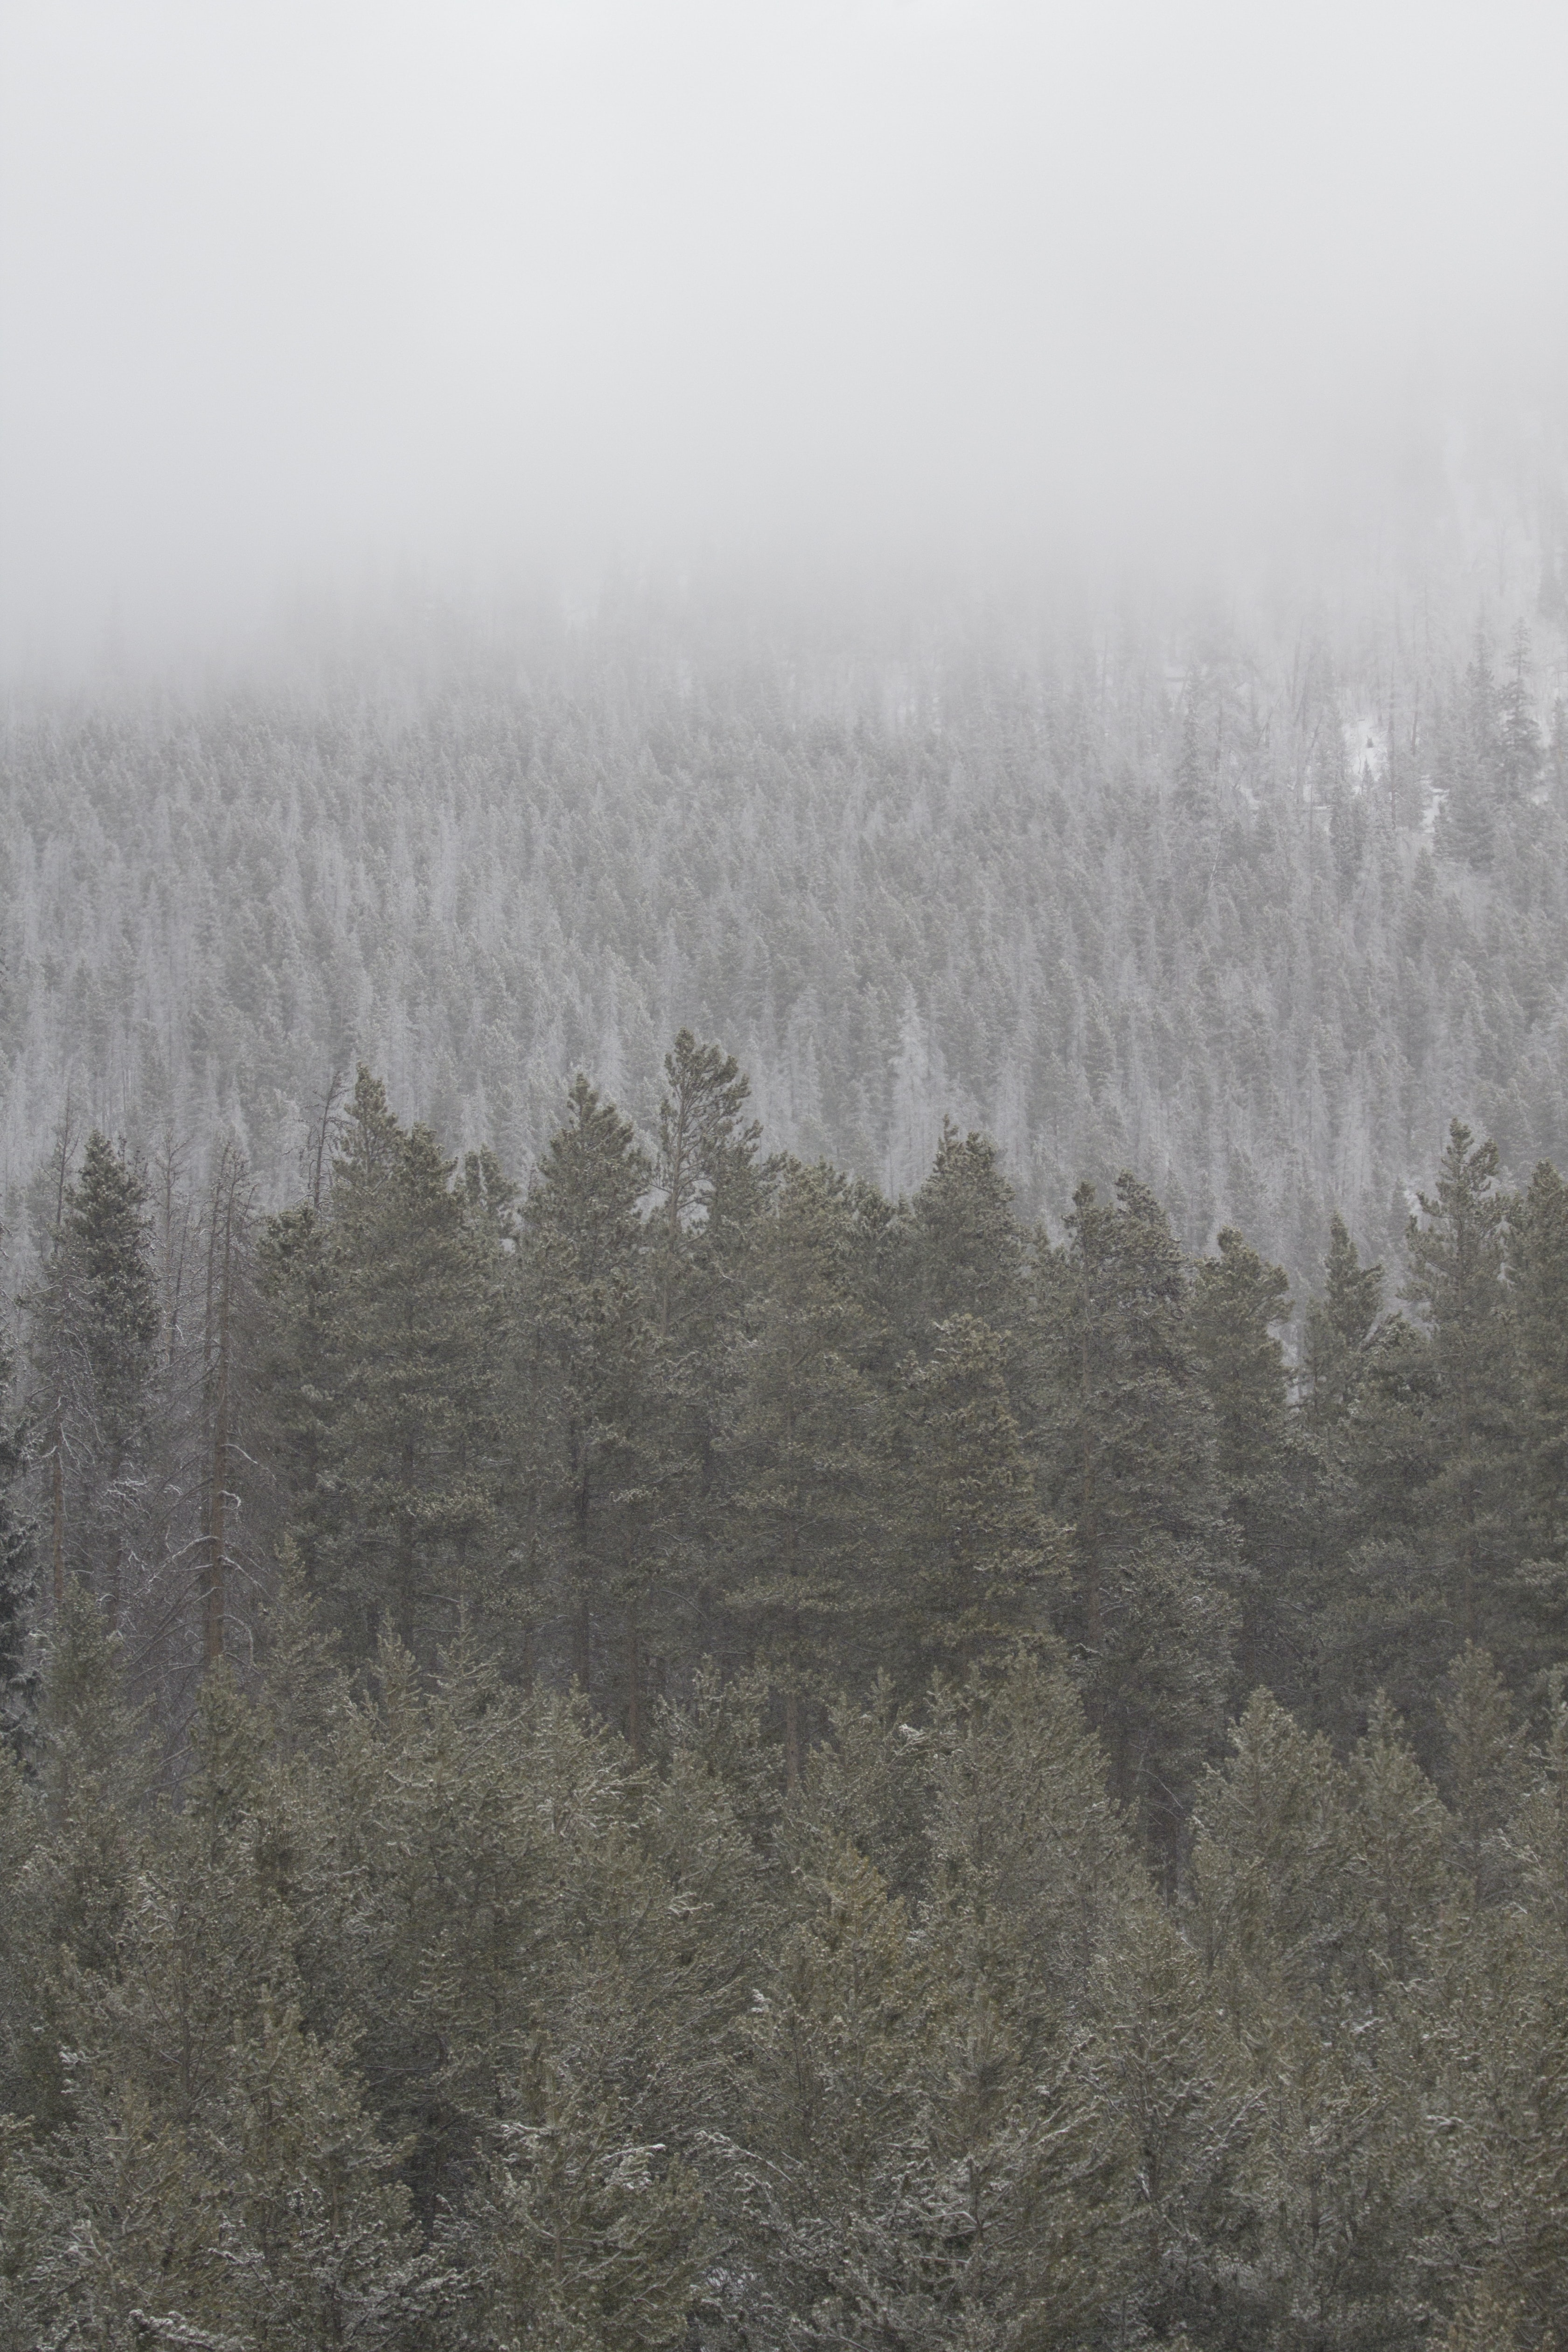 Frost-covered trees in fog in Breckenridge